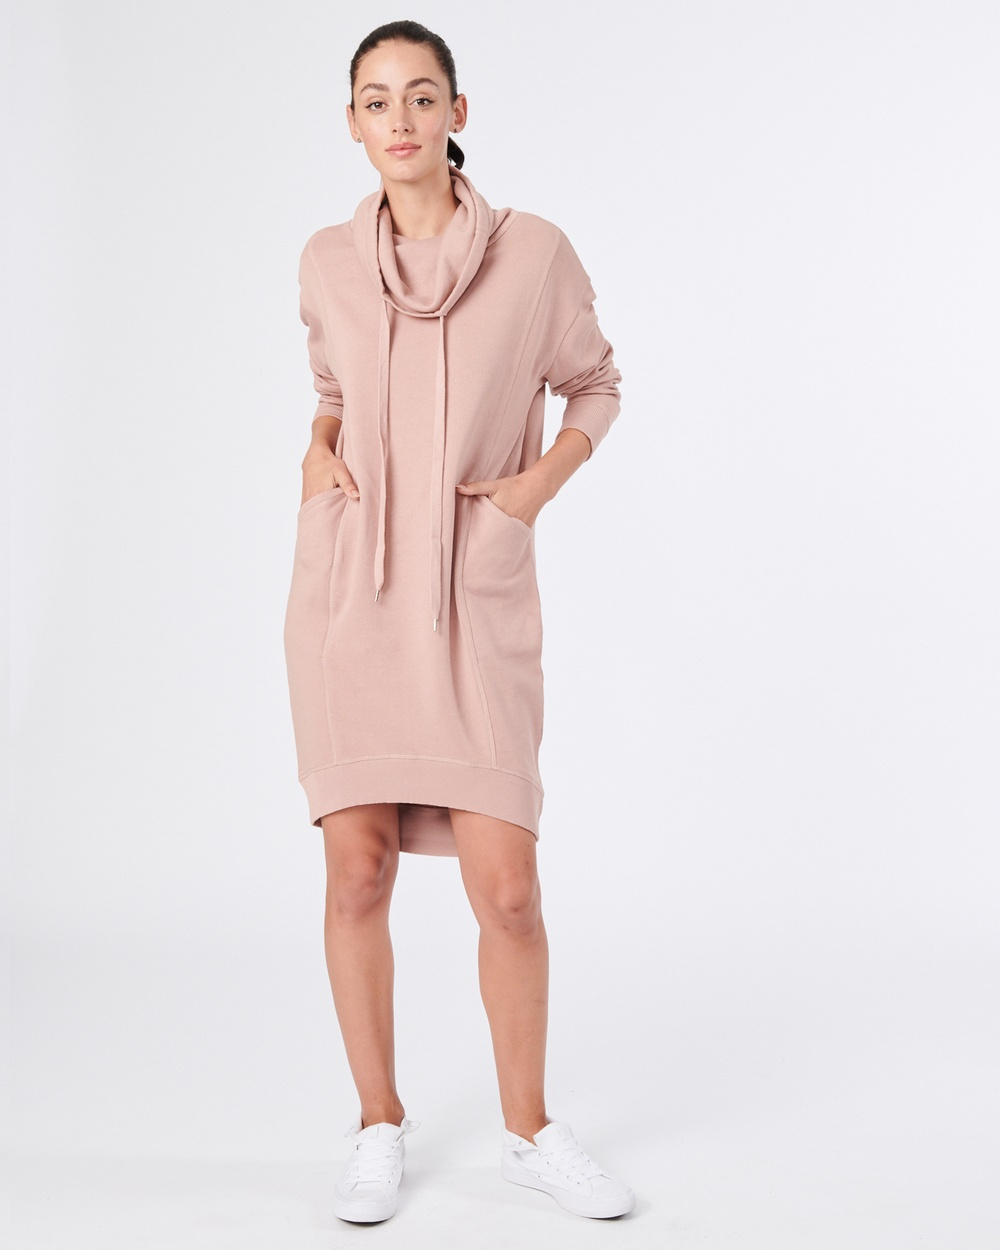 jac + mooki Dalston Dress Dresses Pink Dalston Dress